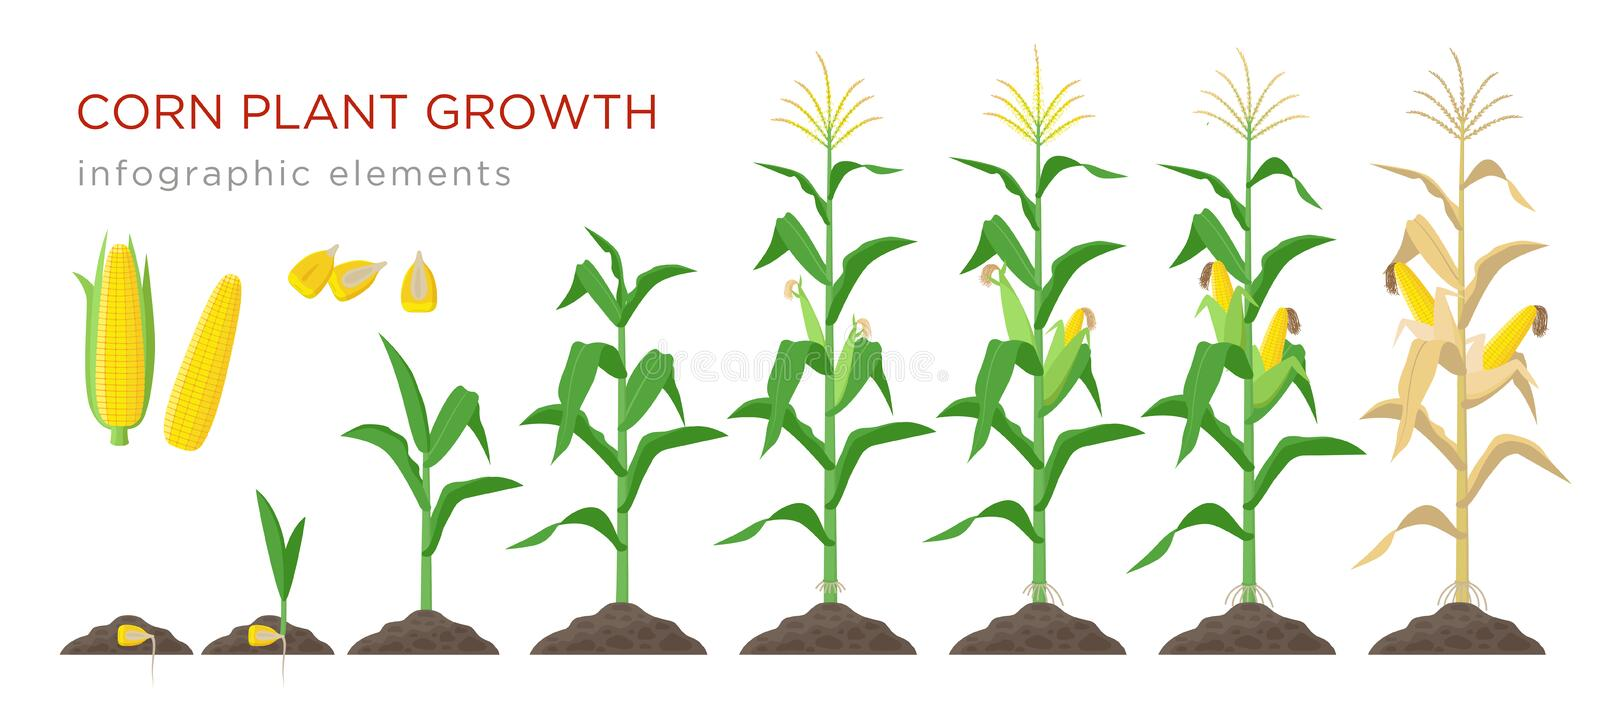 Corn growing stages vector illustration in flat design. Planting process of corn plant. Maize growth from grain to vector illustration